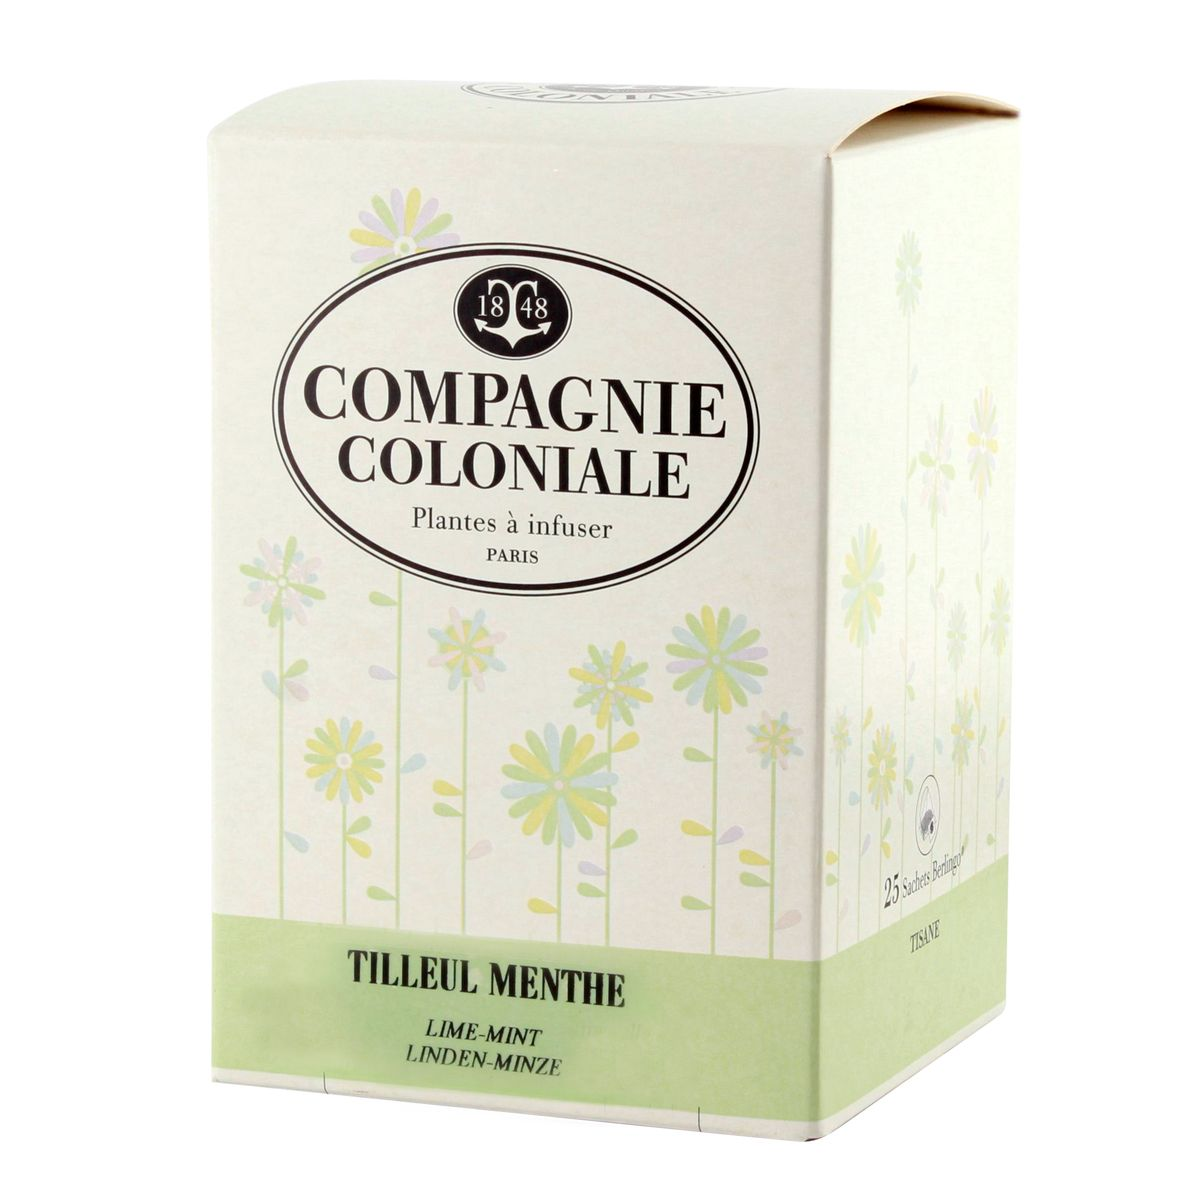 INFUSION TILLEUL MENTHE - COMPAGNIE COLONIALE